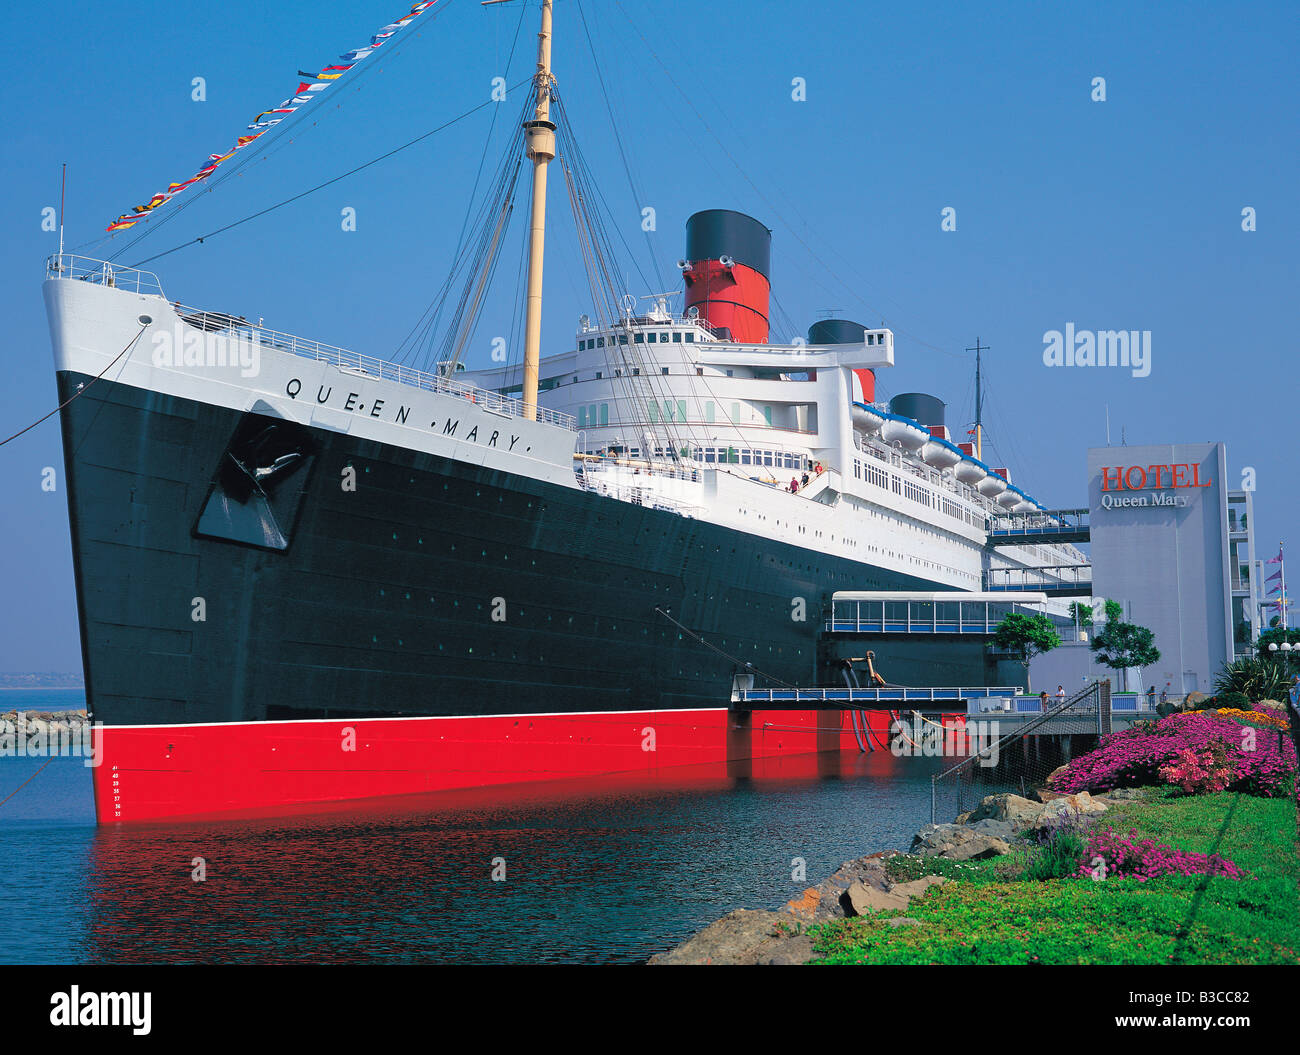 Queen Mary Schiff Schwimmenden Hotel In Los Angeles Kalifornien